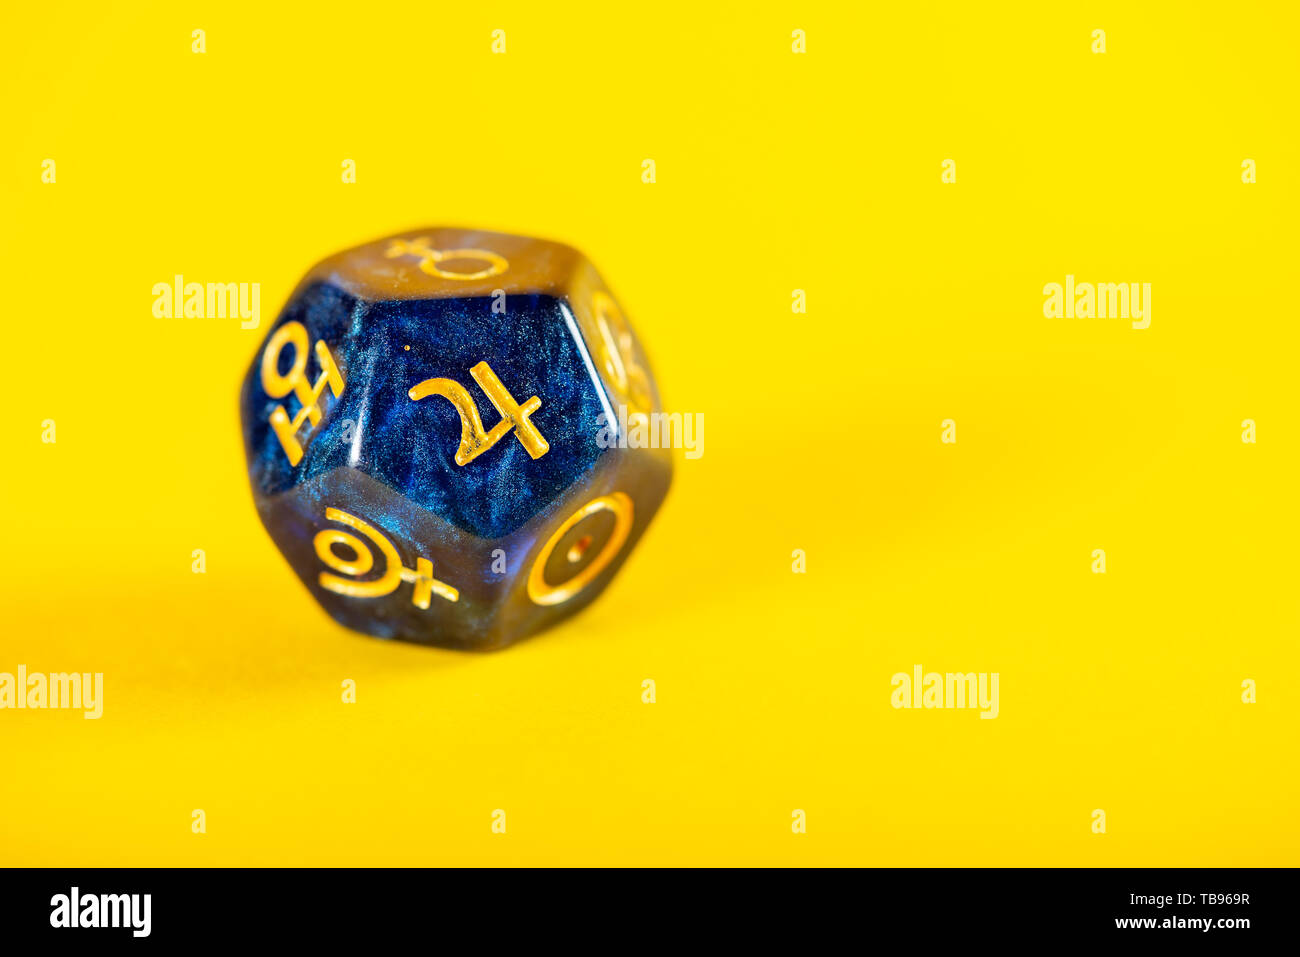 Astrology Dice With Symbol Of The Planet Jupiter On Yellow Background Stock Photo Alamy